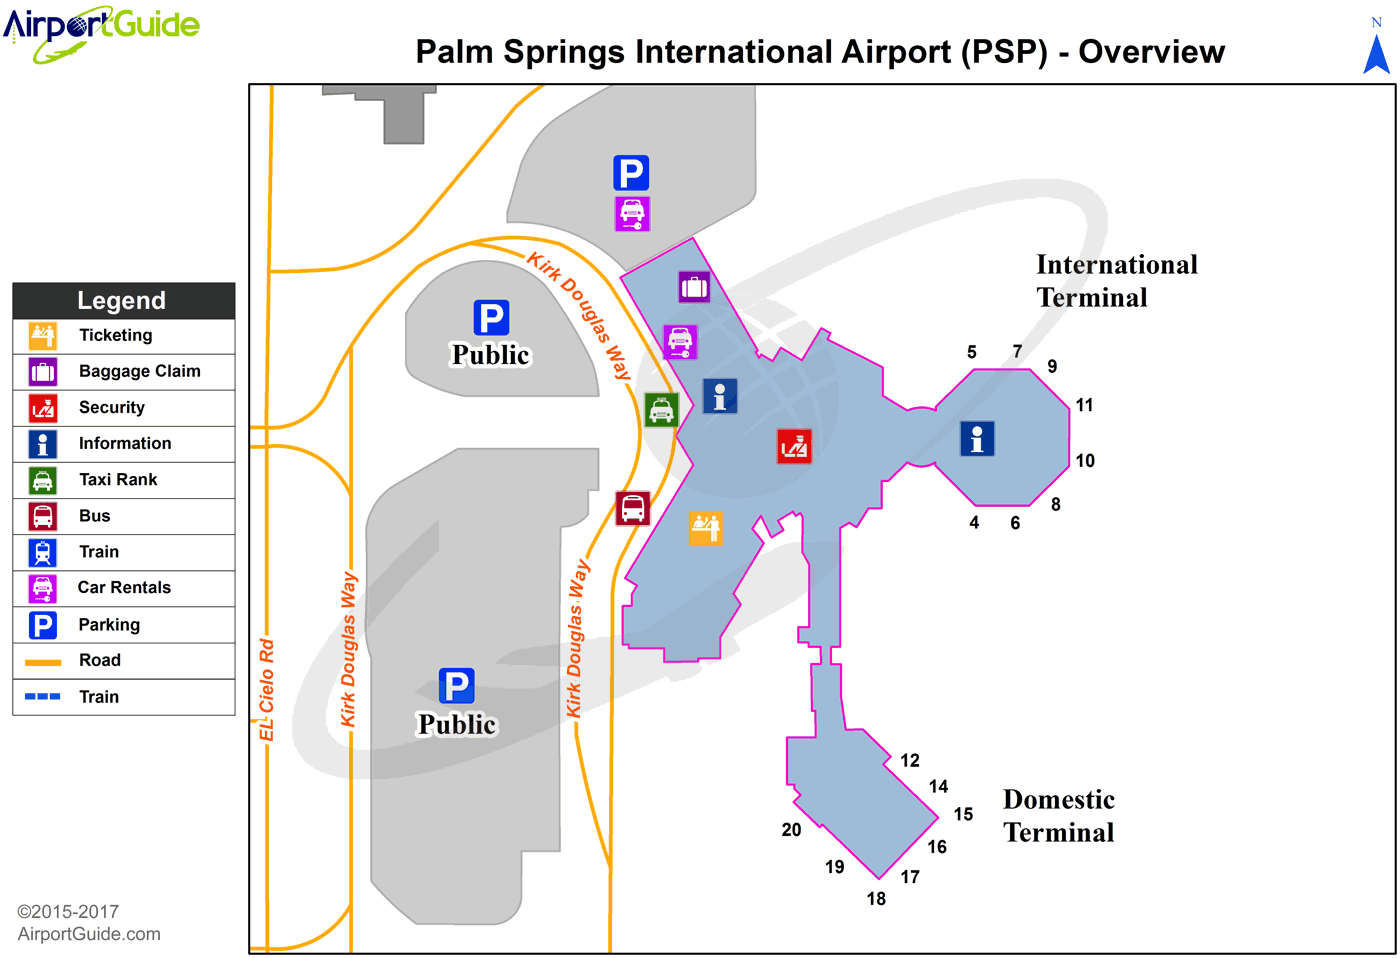 palm springs  palm springs international (psp) airport terminal map overview. palm springs  palm springs international (psp) airport terminal